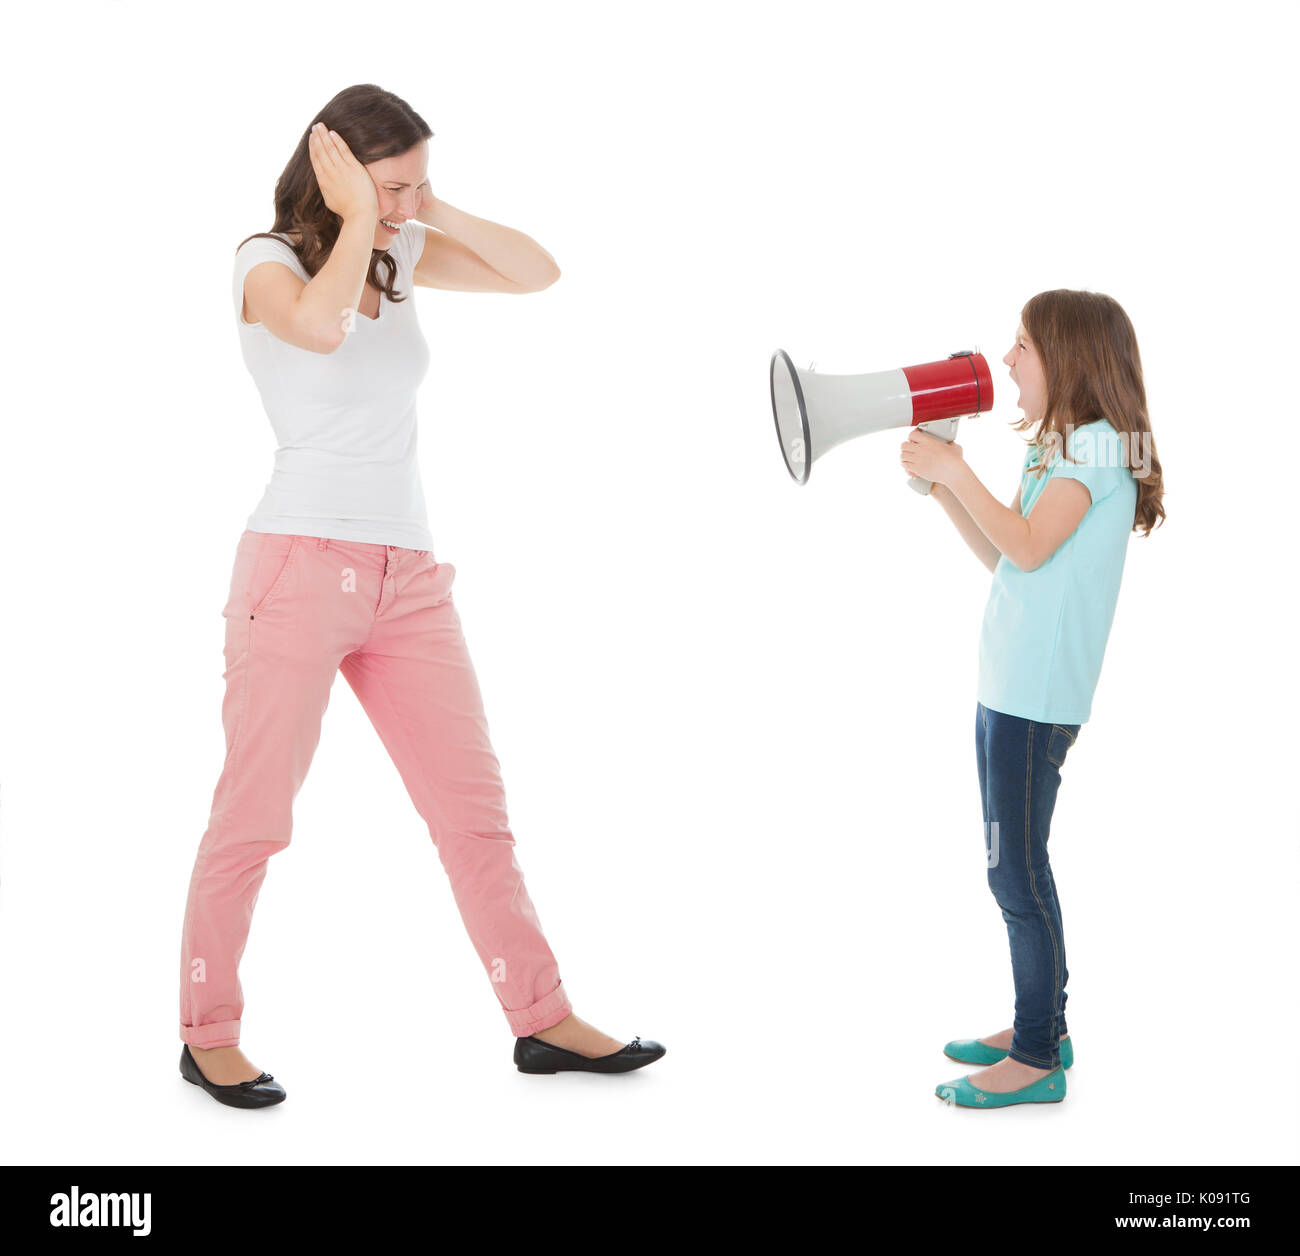 Full length of angry daughter shouting through megaphone at mother against white background - Stock Image